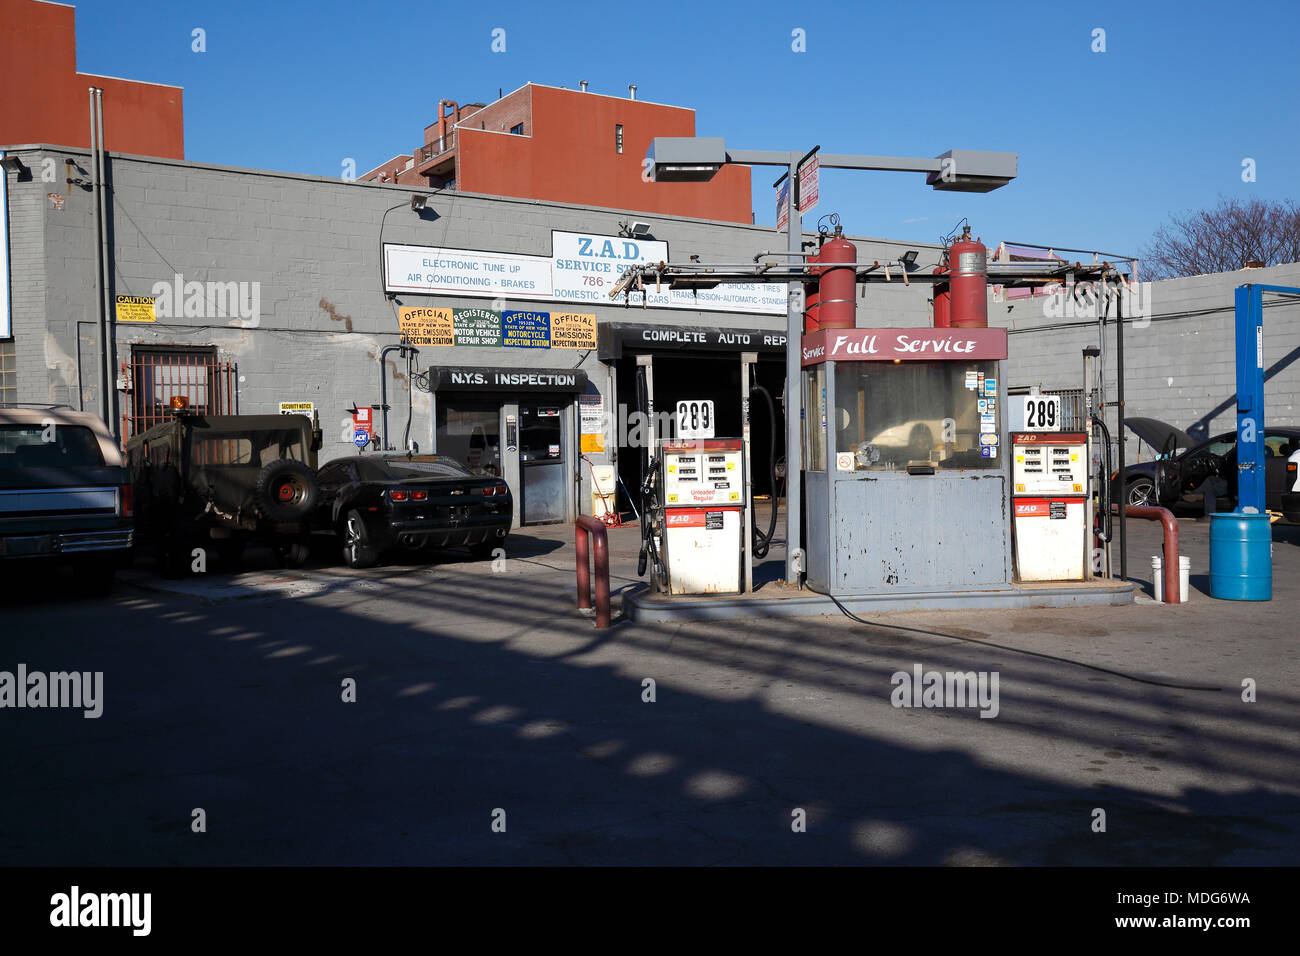 Antique fuel pumps at old gasstation in New York City - Stock Image